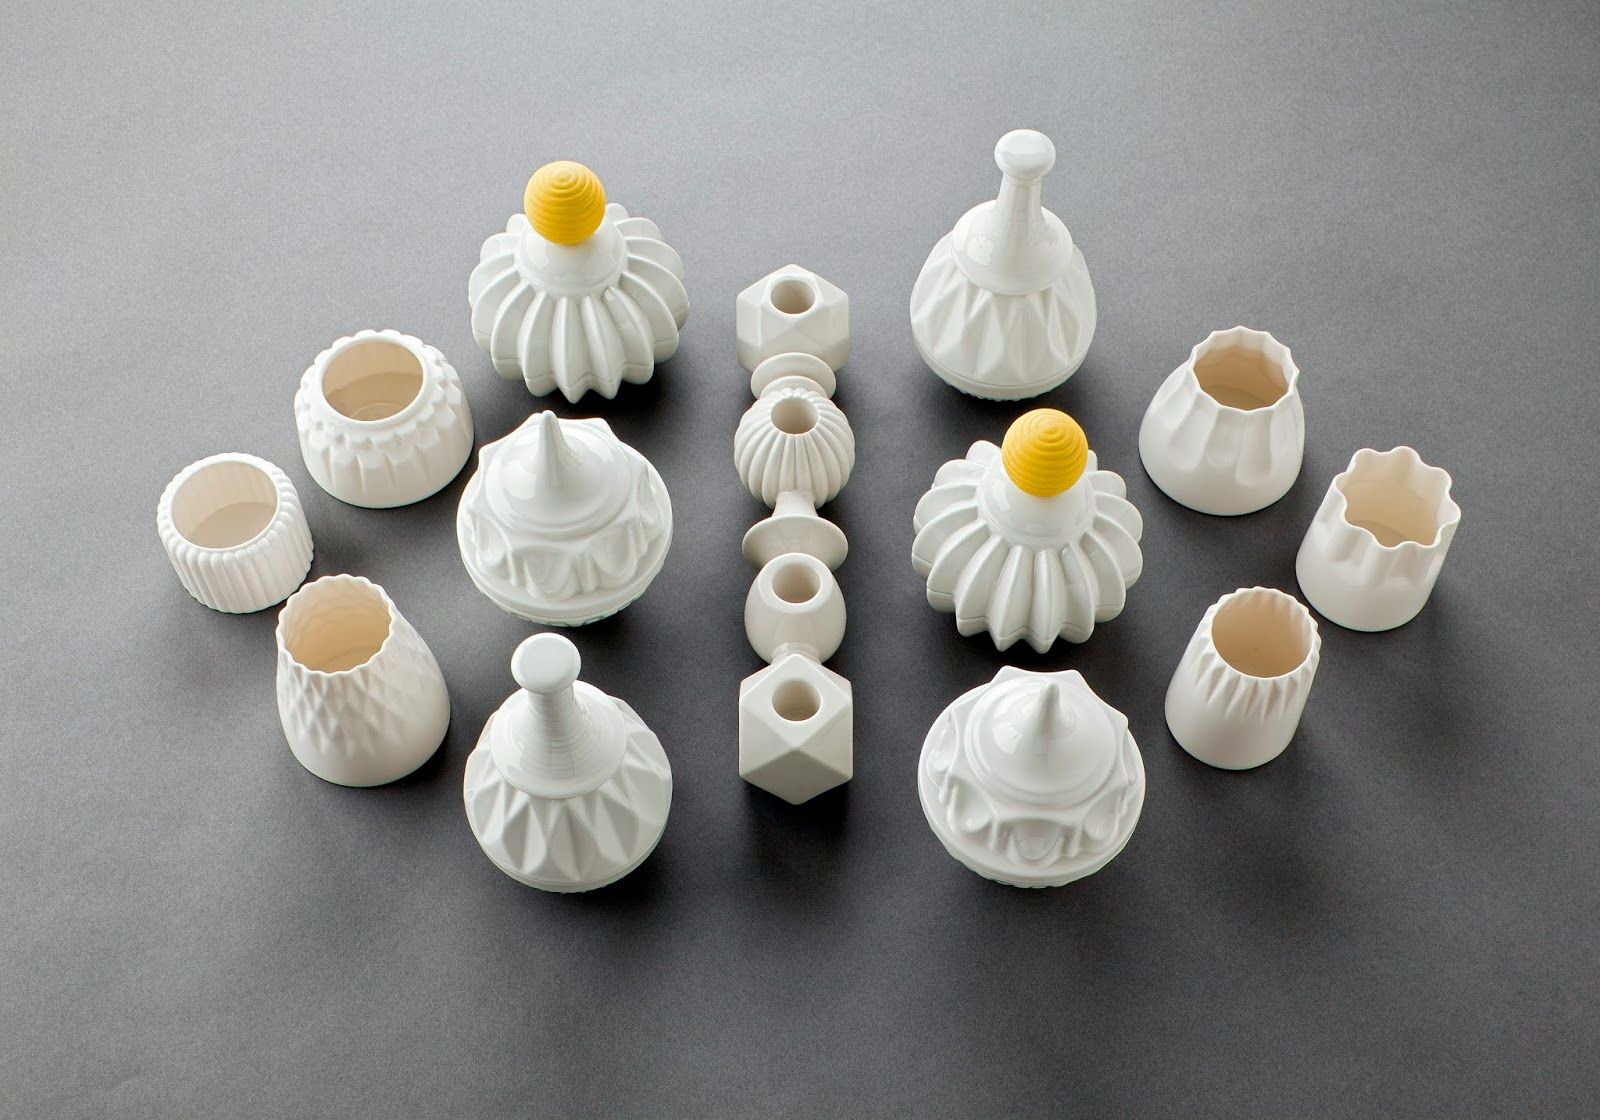 Danish Finnsdottir  makes nice looking ceramics that resembles pastry or candy. I love the pendant lights and vases. --- Tansk...